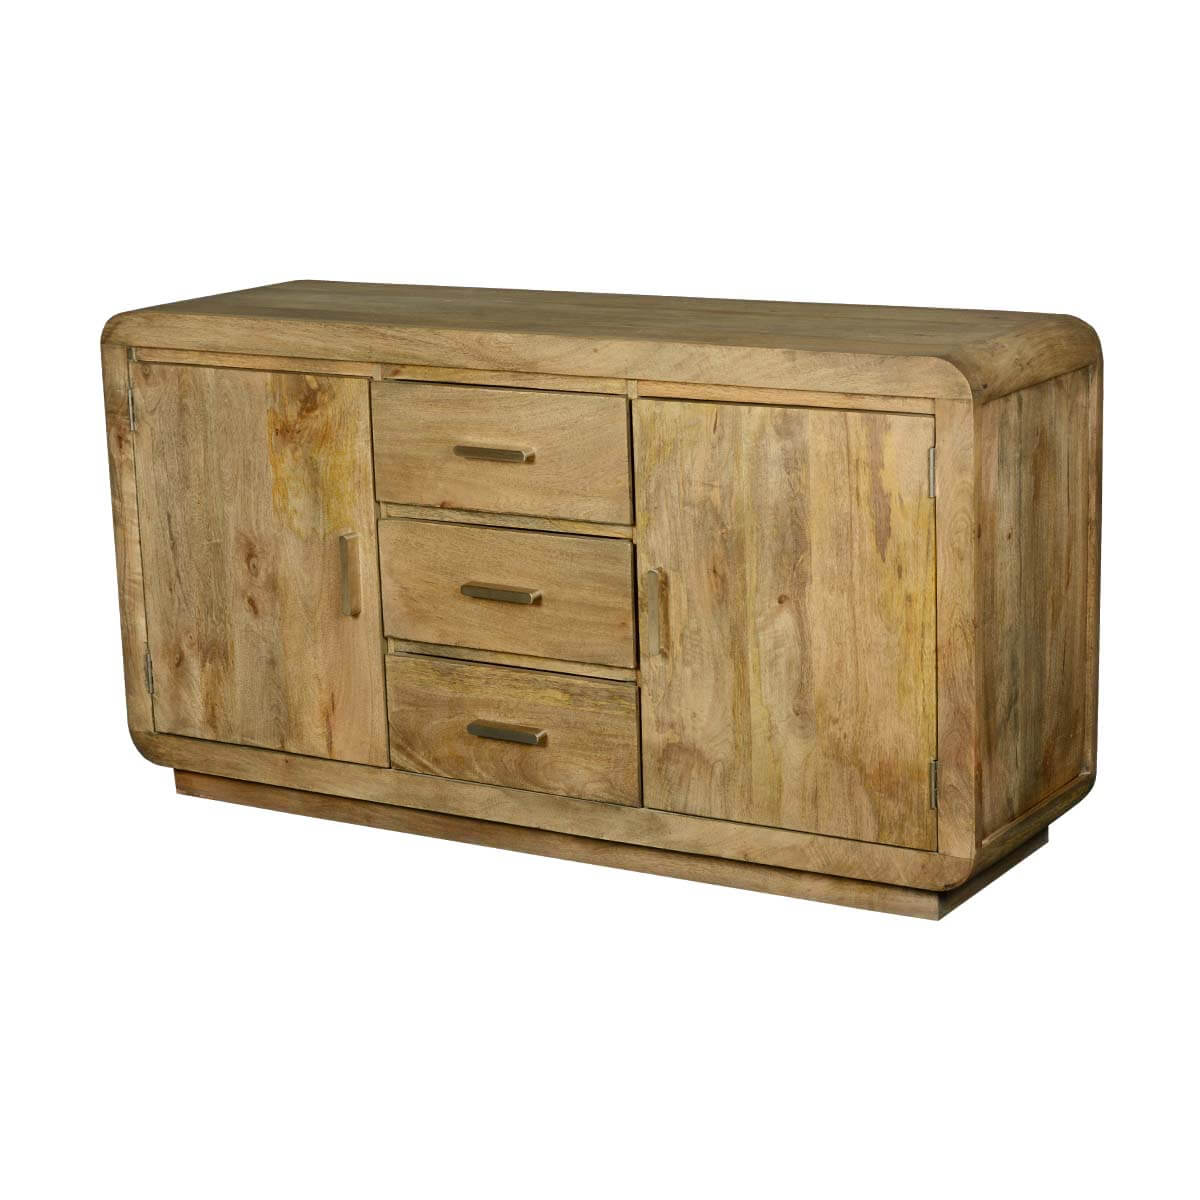 Rounded Corners Mango Wood Buffet Cabinet With Drawers. Full resolution‎  file, nominally Width 1200 Height 1200 pixels, file with #B28C19.